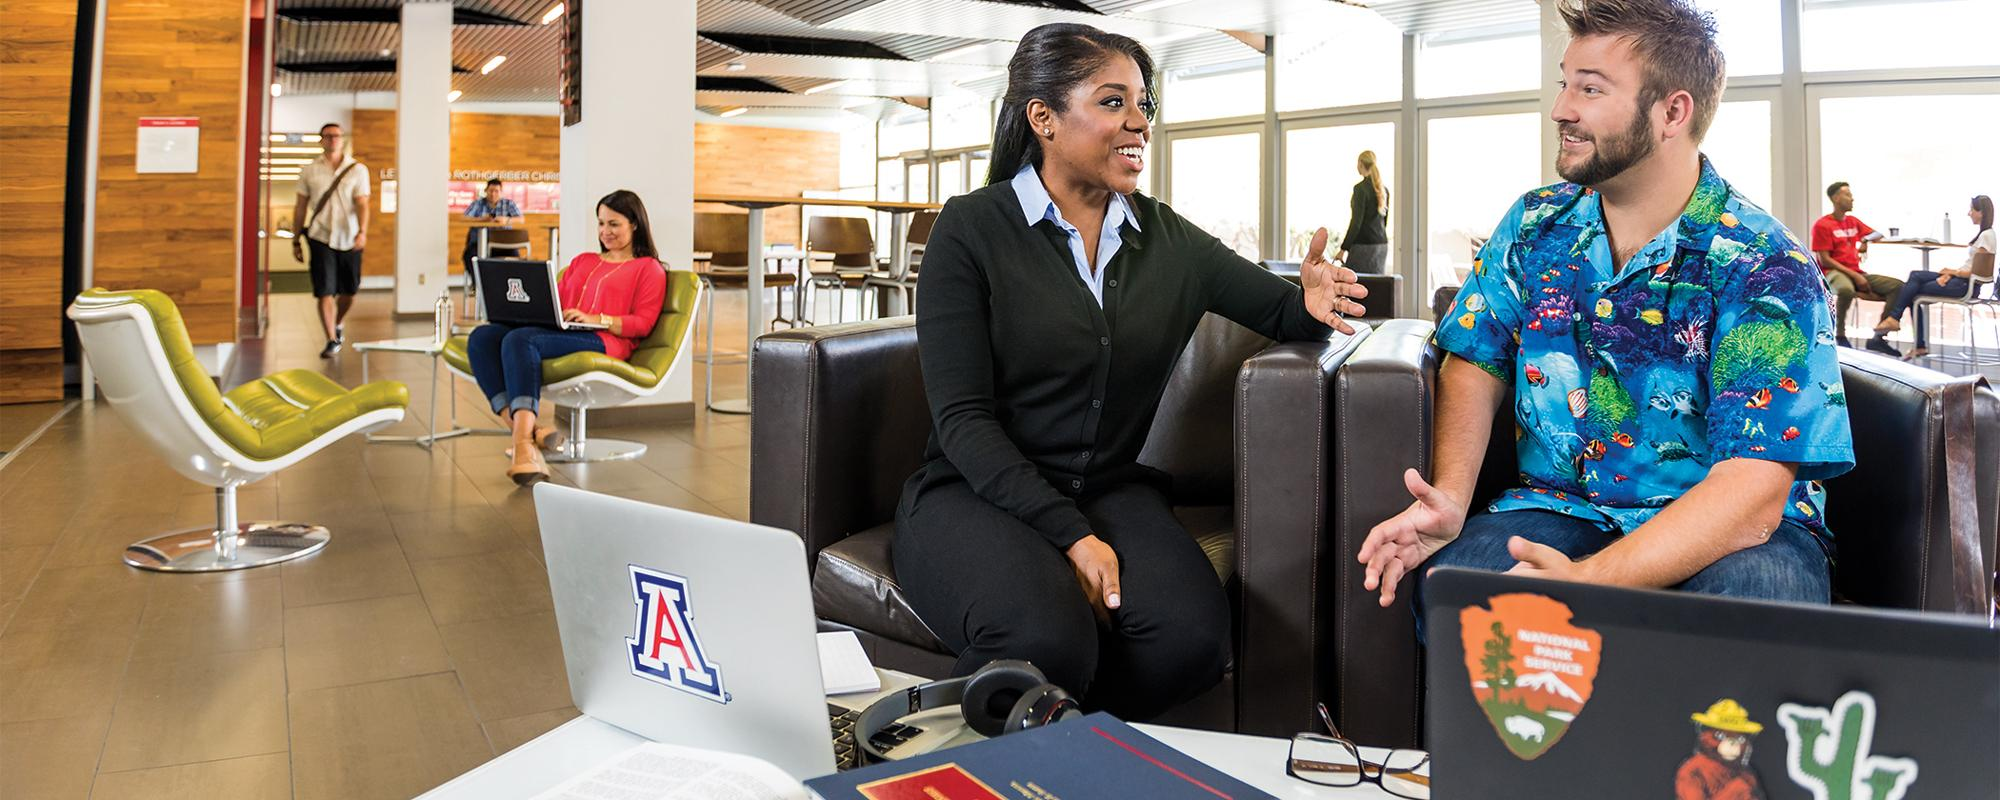 Two students sit on a couch in mid-conversation, surrounded by law textbooks, laptops and other students